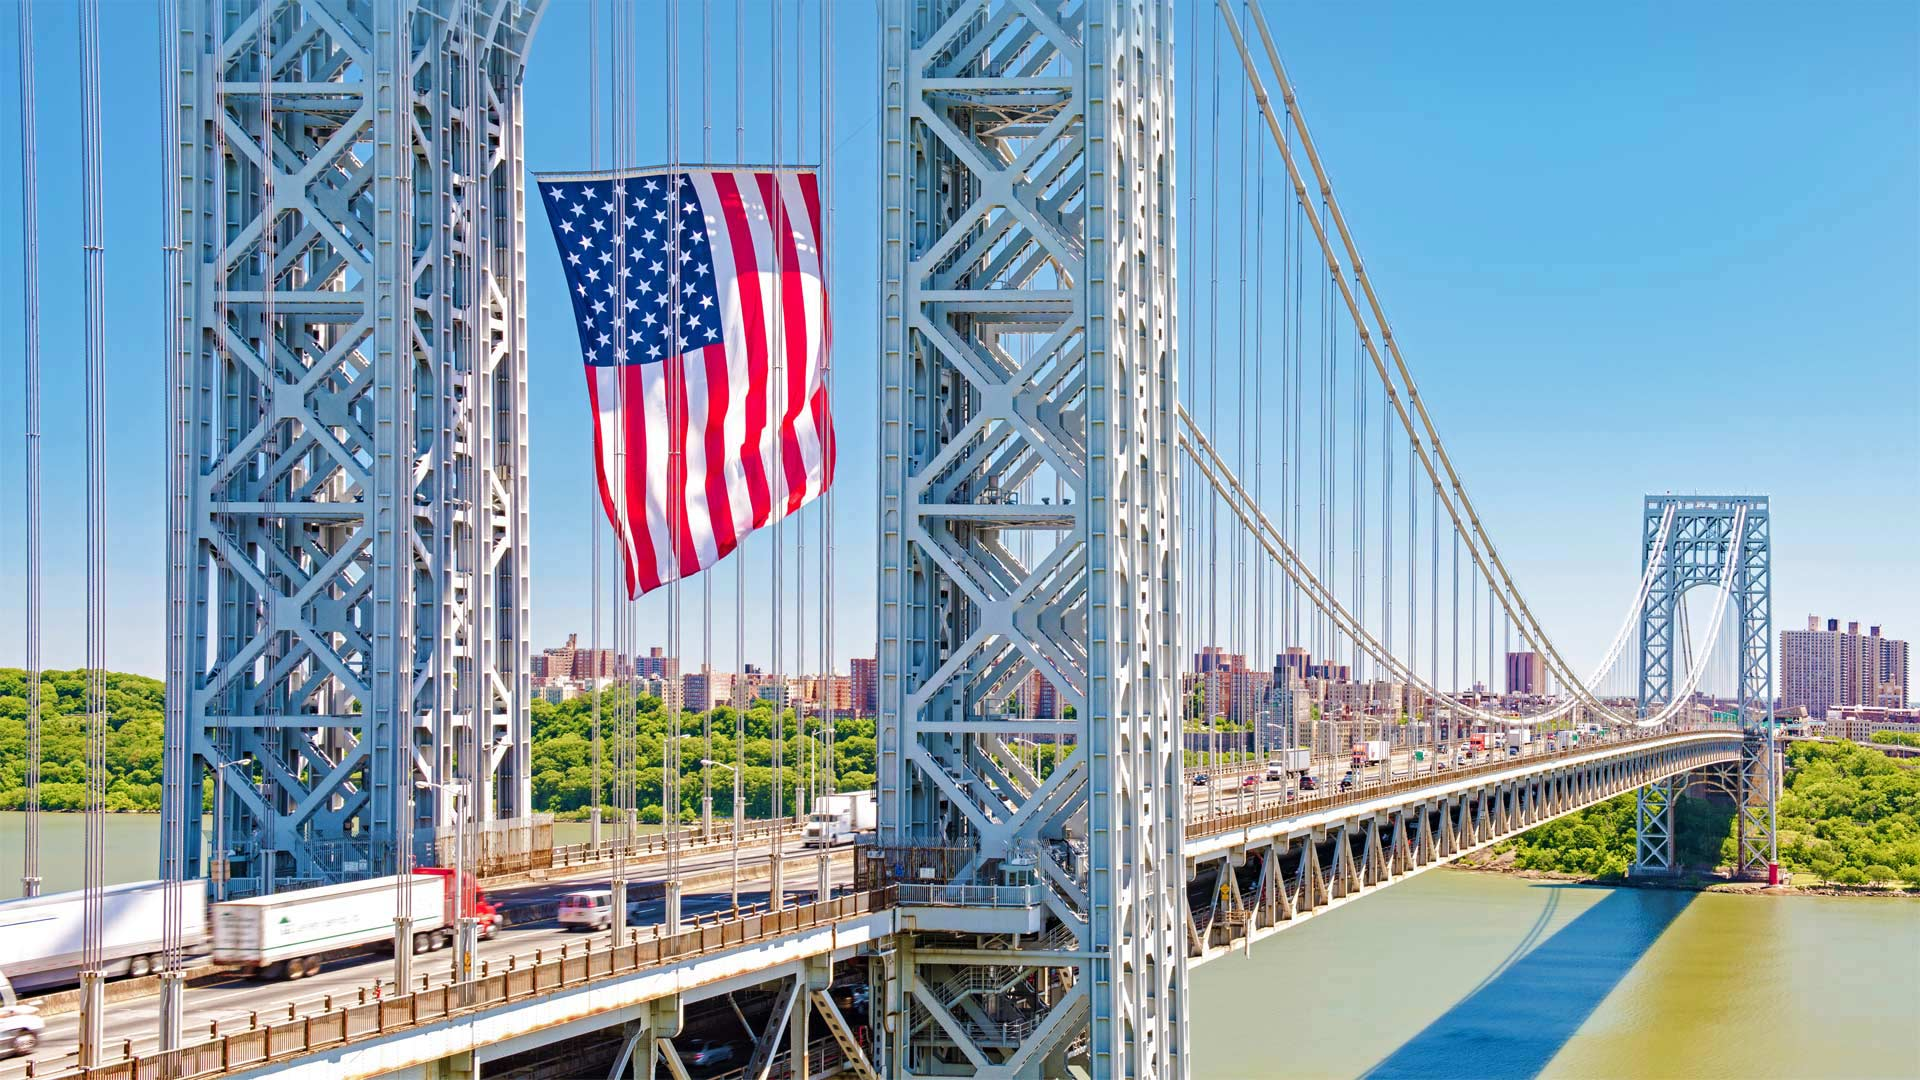 The George Washington Bridge displays the American flag in honor of Flag Day, June 14, 2016, Fort Lee, New Jersey (© Robert D. Barnes/Getty Images)(Bing United States)